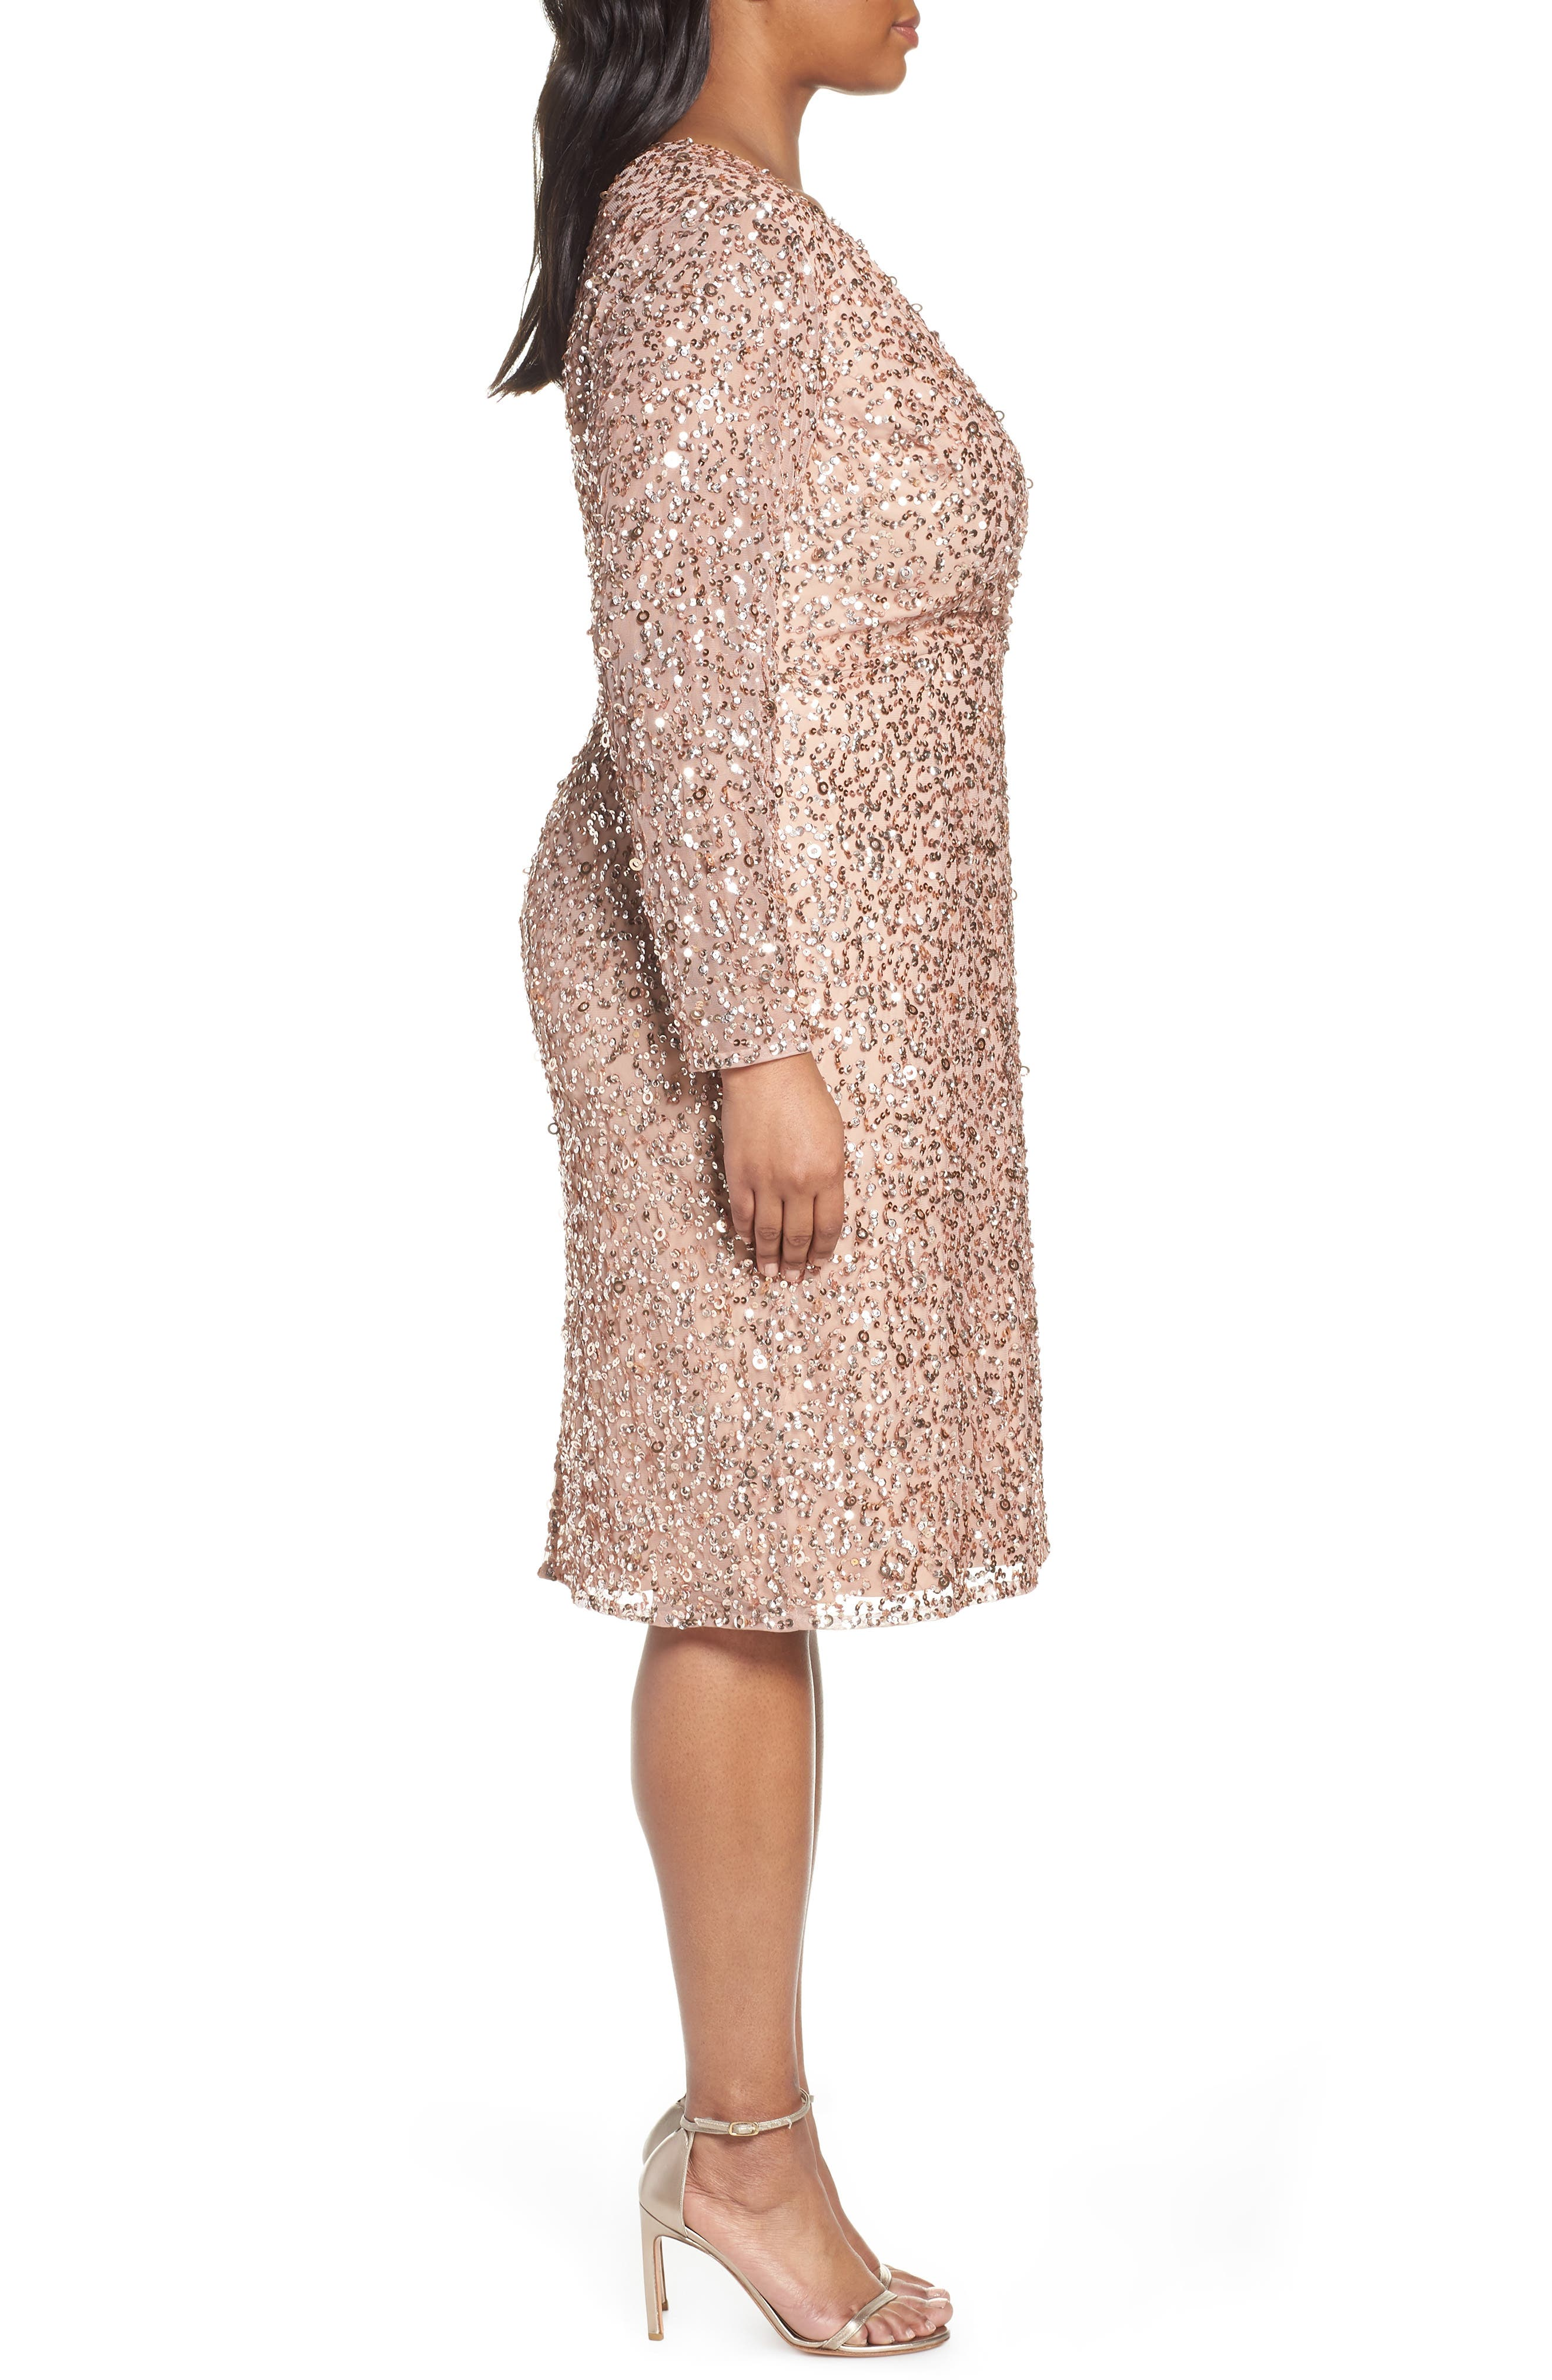 ADRIANNA PAPELL,                             Beaded Mesh Cocktail Dress,                             Alternate thumbnail 4, color,                             ROSE GOLD